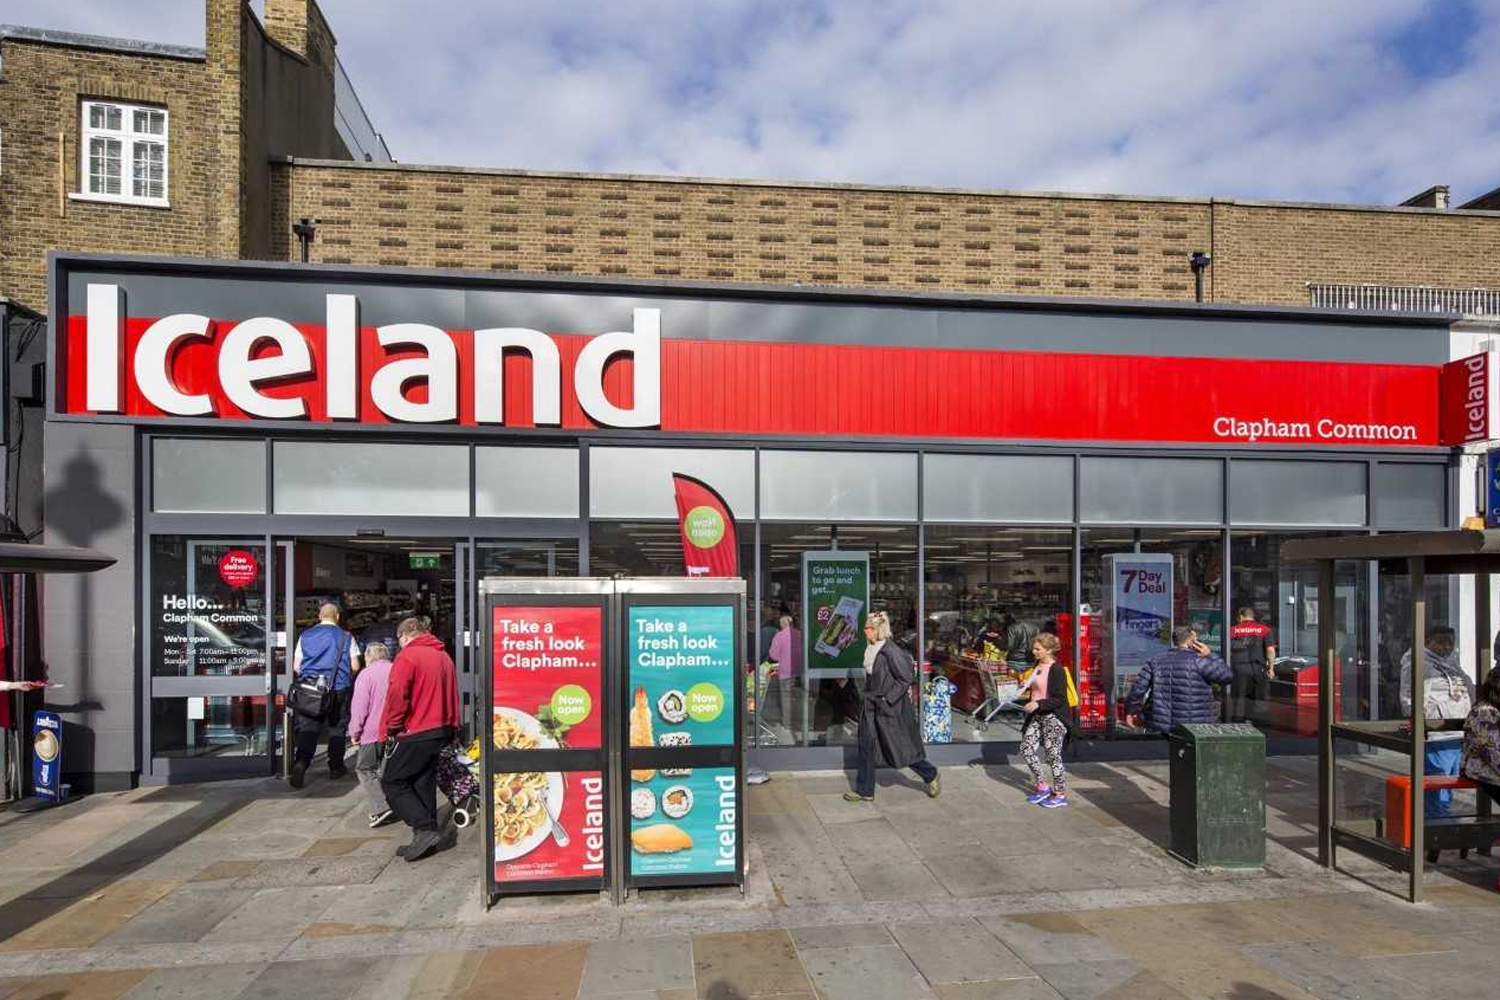 10% off at Iceland this July